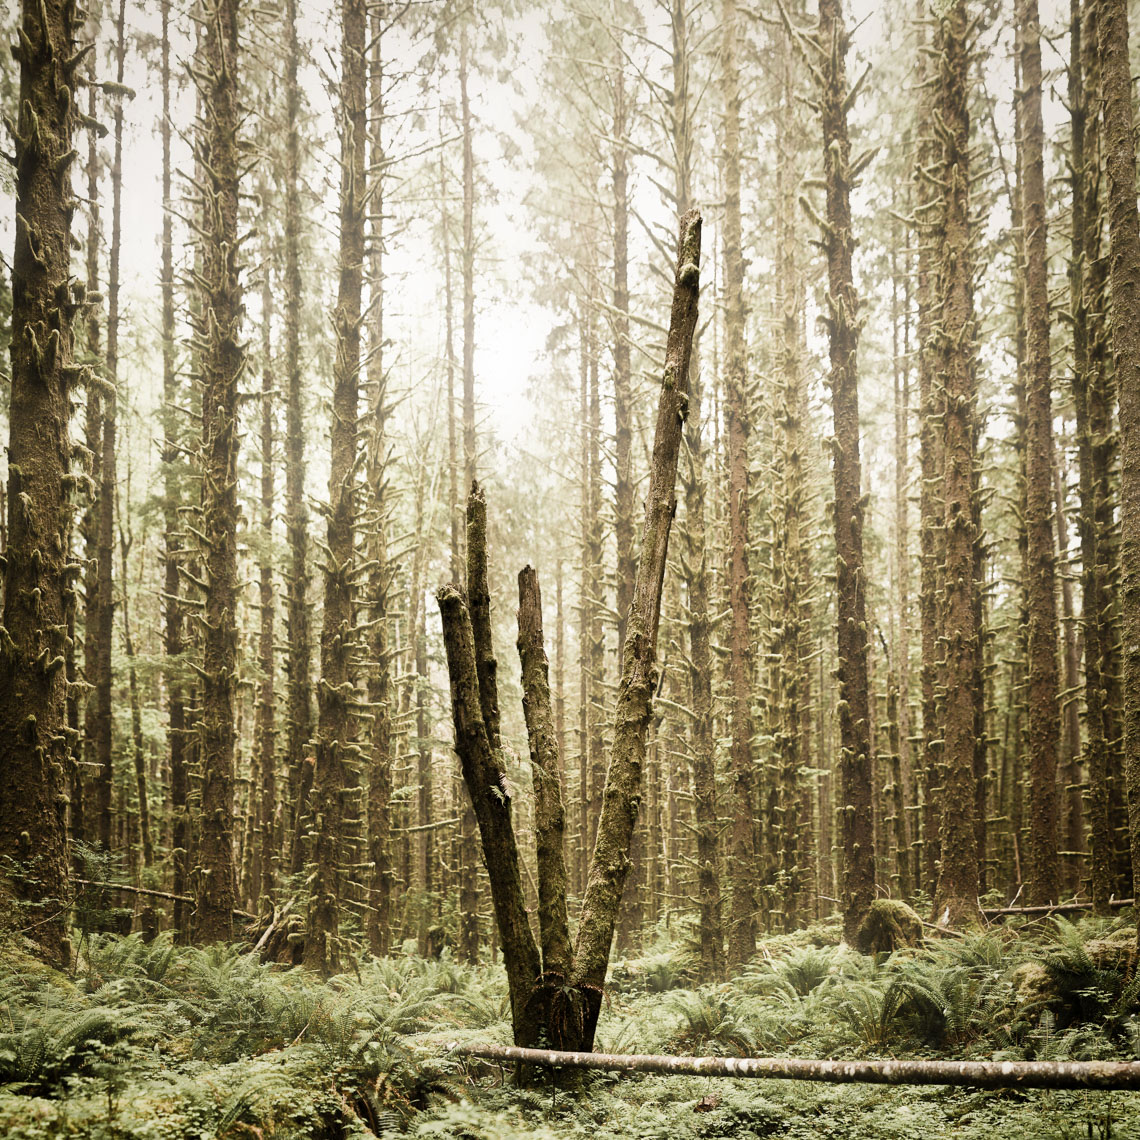 [Group 1]-20110709-PNW_2490_20110709-PNW_2534-45 images